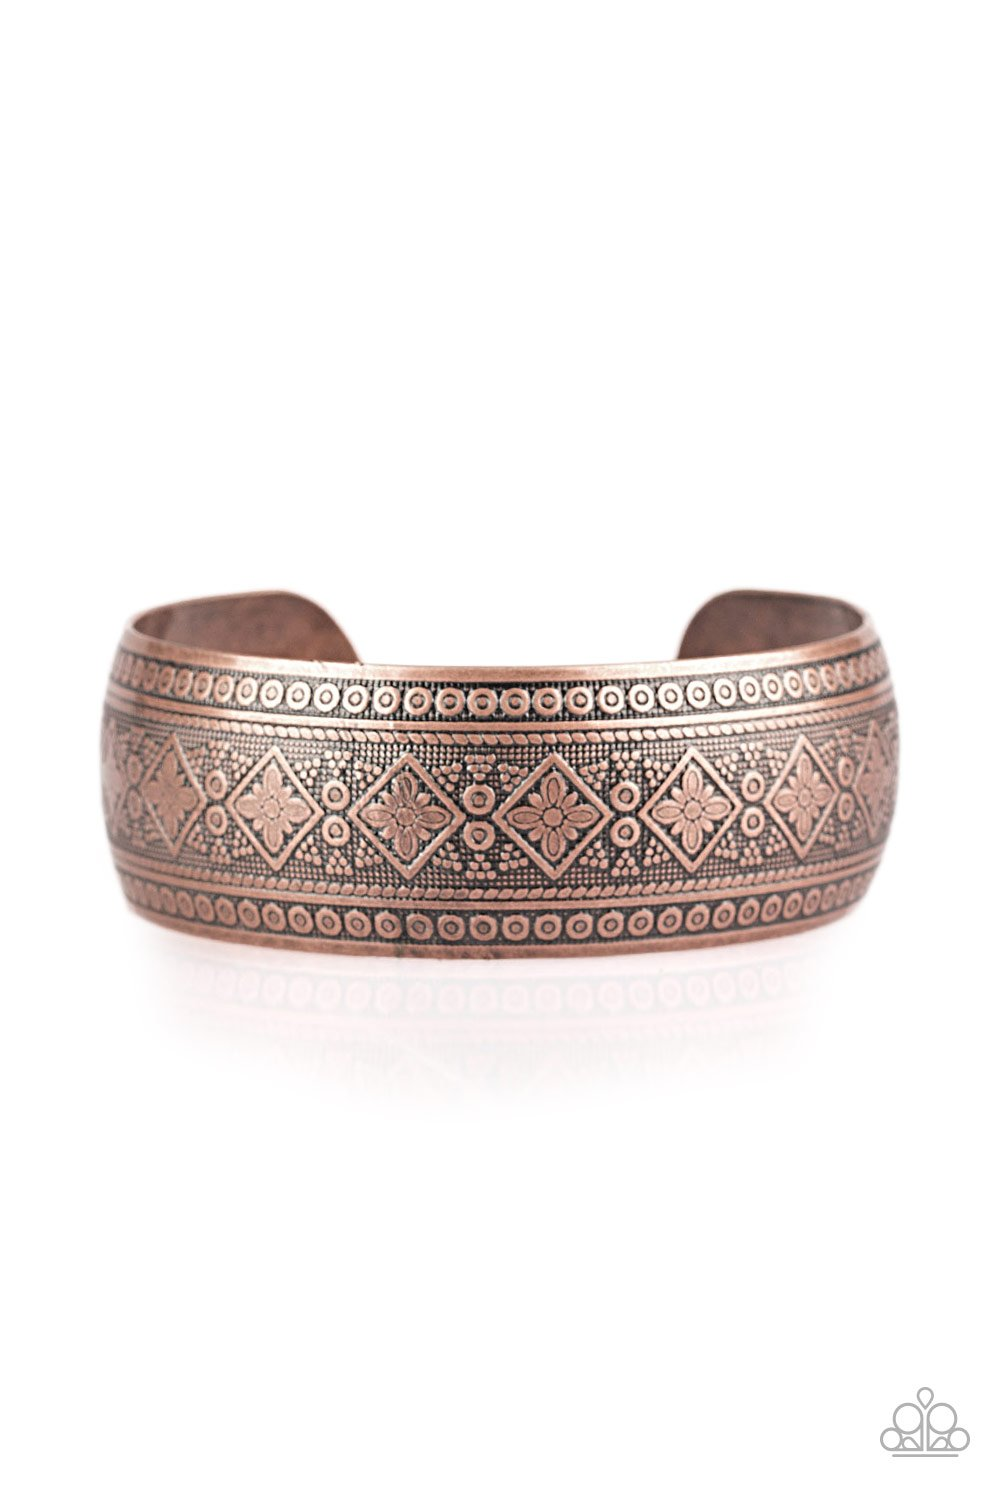 Gorgeously Gypsy - Copper - Paparazzi Accessories - Pretty Girl Jewels